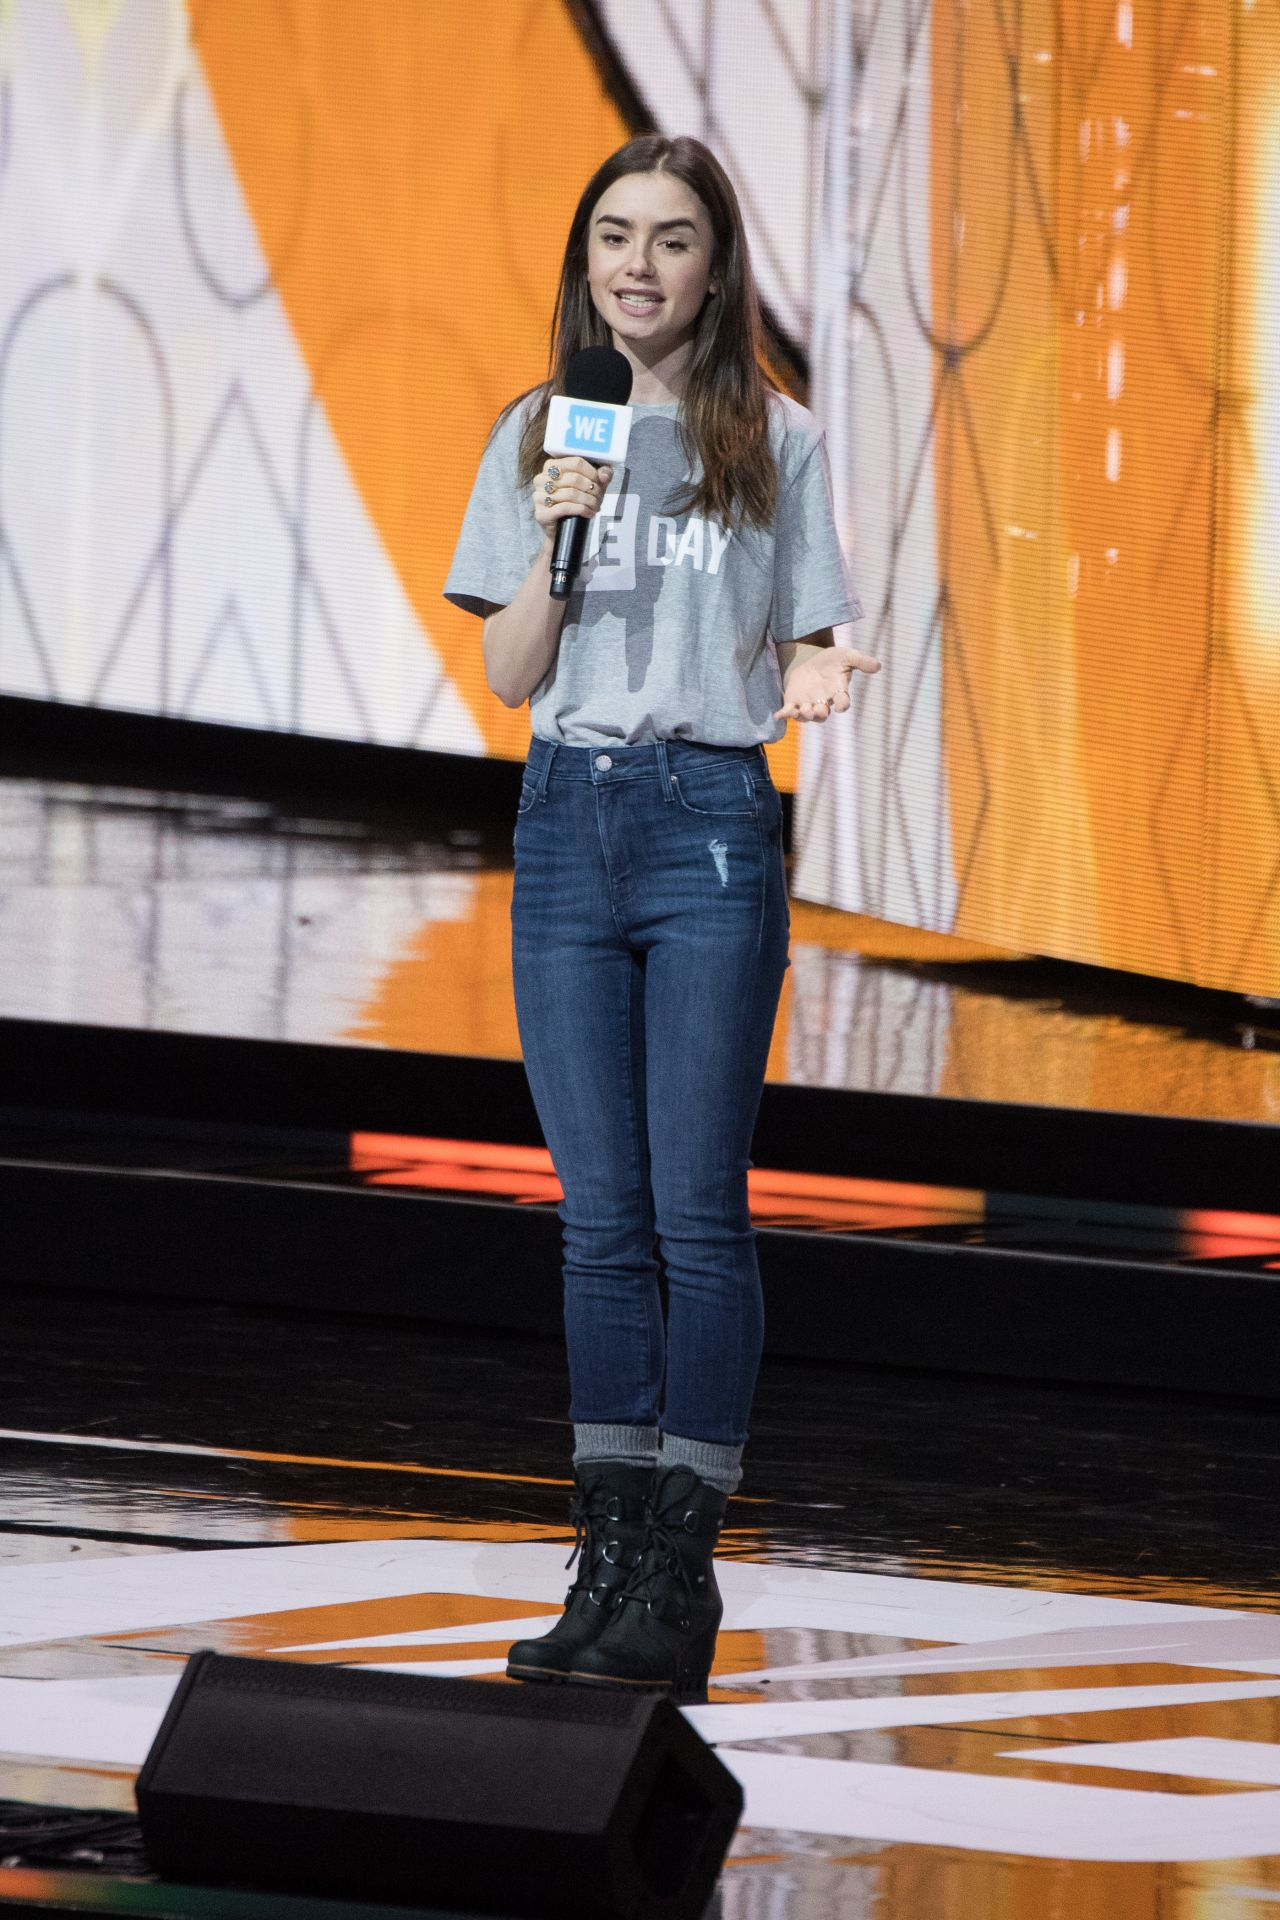 Lily Collins We Day In London 03 07 2018